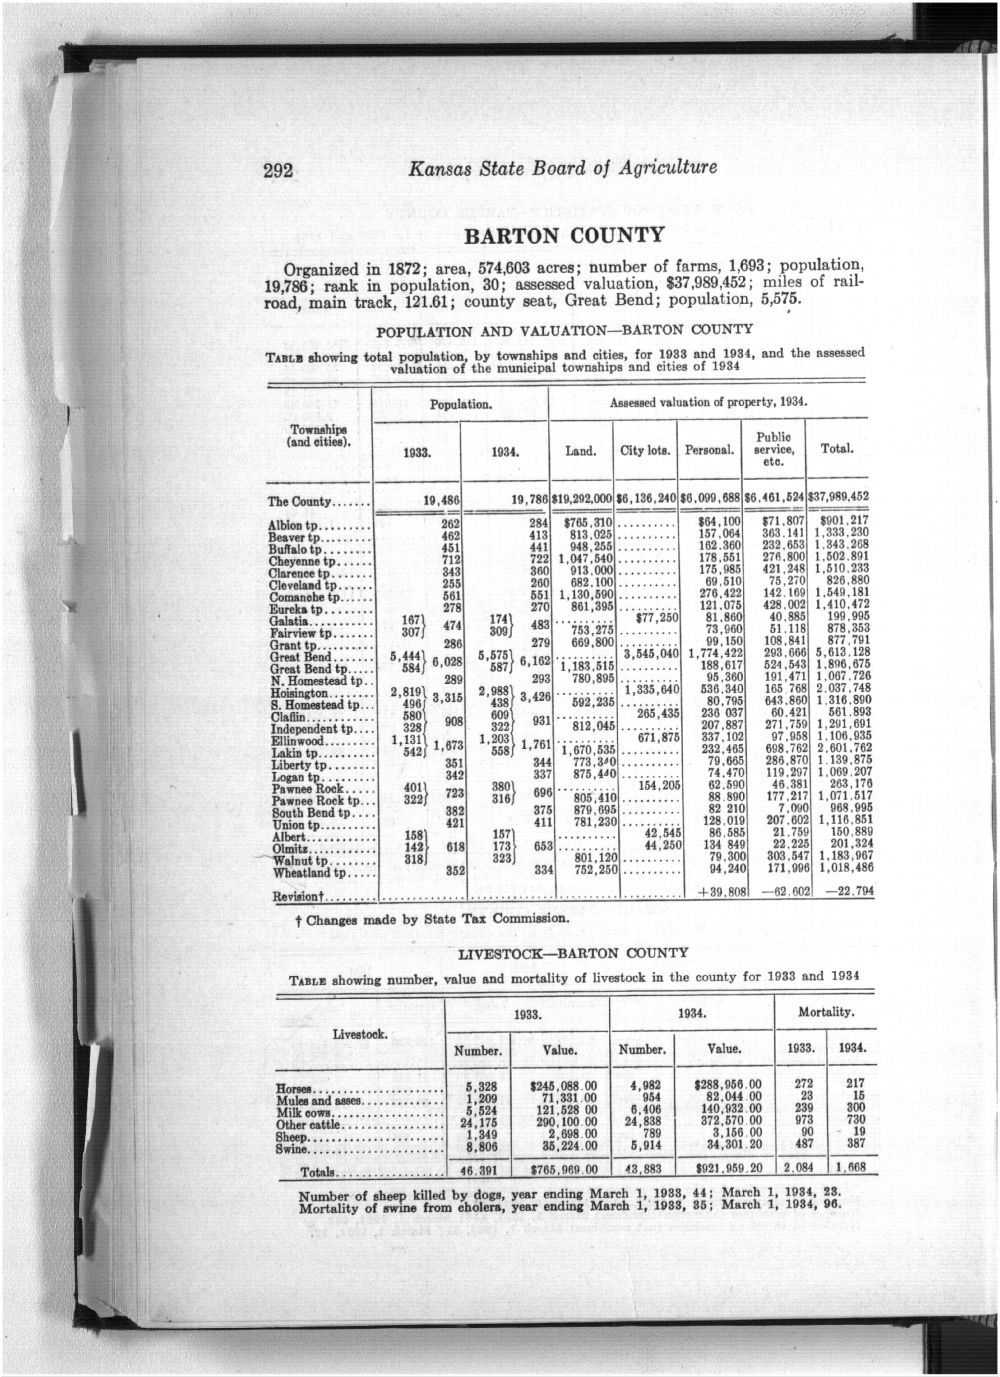 Twenty-ninth Biennial Report, Statistics by county showing population, acreage, production, and livestock, 1933-1934 - 292